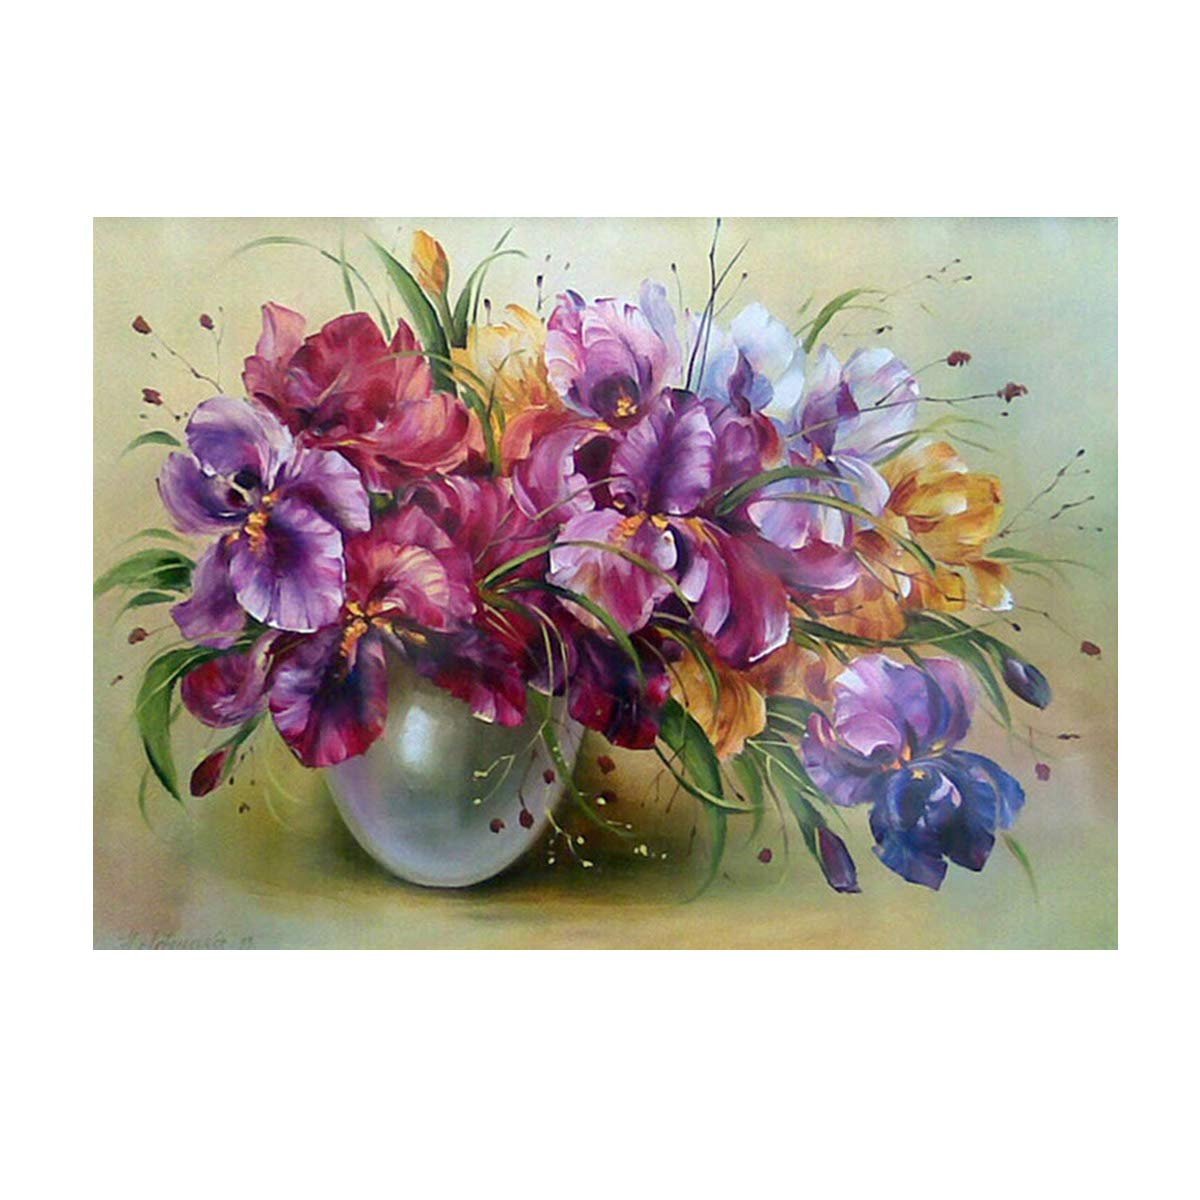 DIY 5D Diamond Painting by Number Kits Full Drill Rhinestone Embroidery Cross Stitch Pictures Arts Craft for Home Wall Decor,Colored Orchid - 11.8x15.7 inches MXJSUA 4336932688